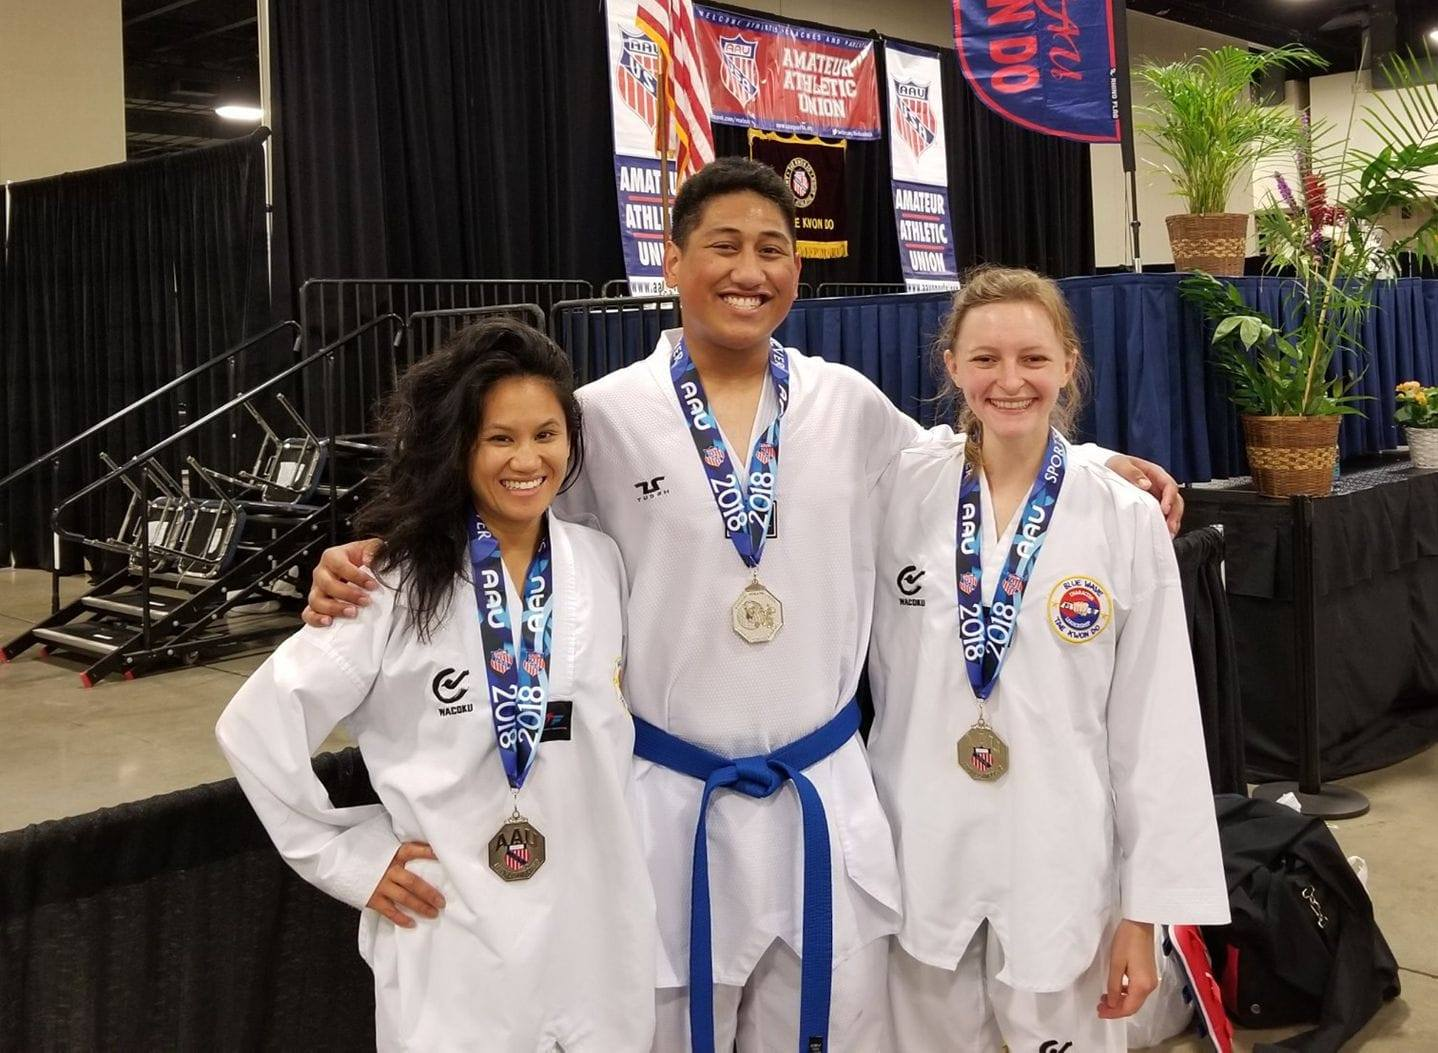 AAU Nationals - Our Blue Belts